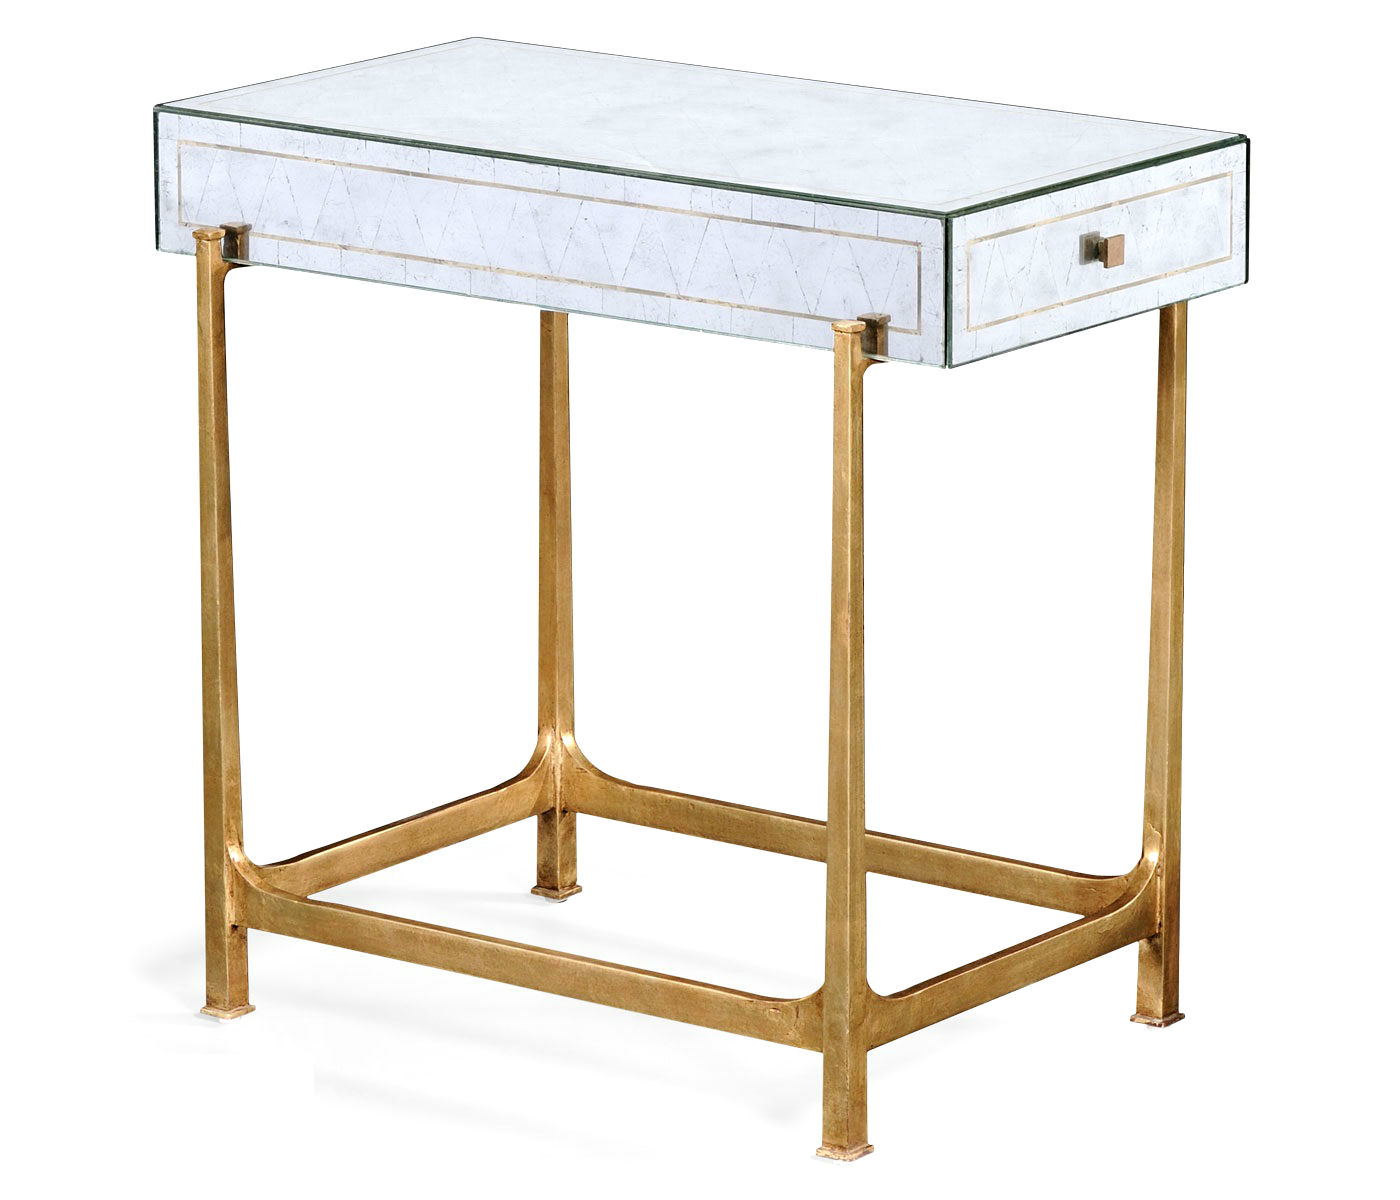 eglomise side table end accent tables gold lamps tall elegant mirrored distressed gilded partner coffee console available hospitality residential and cabinets dining chairs white